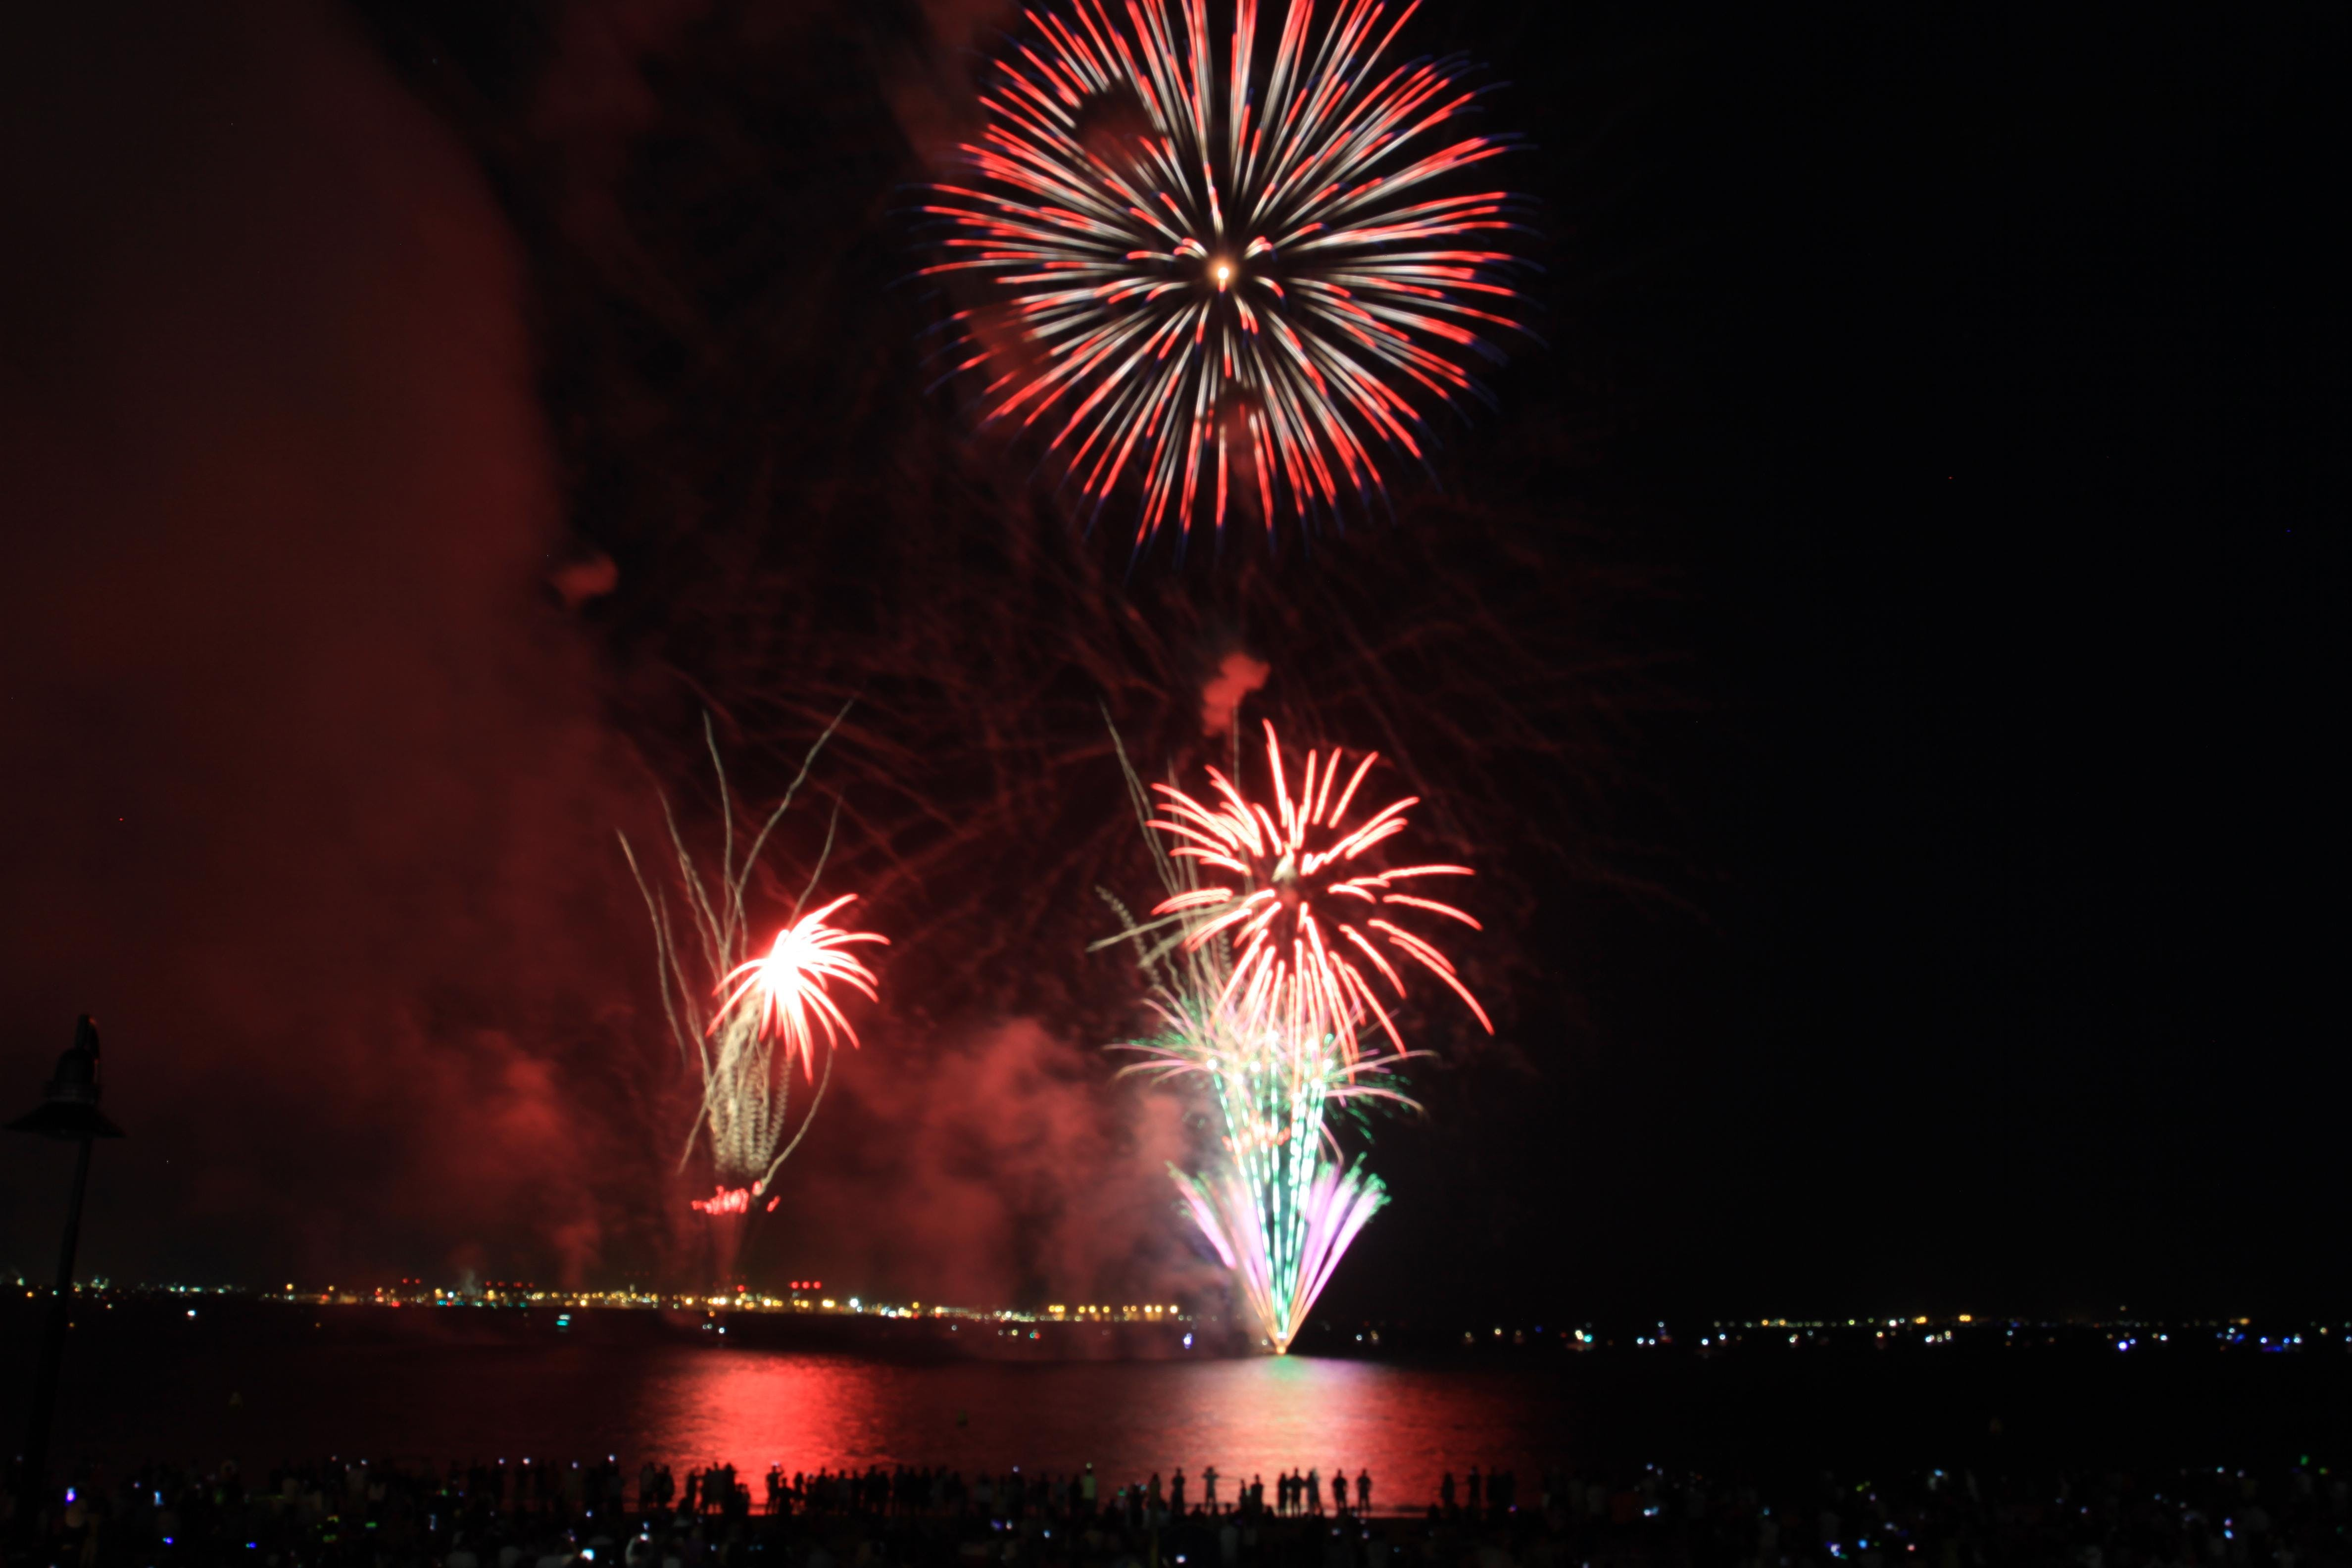 new year's eve family fireworks - 31 dec 2018